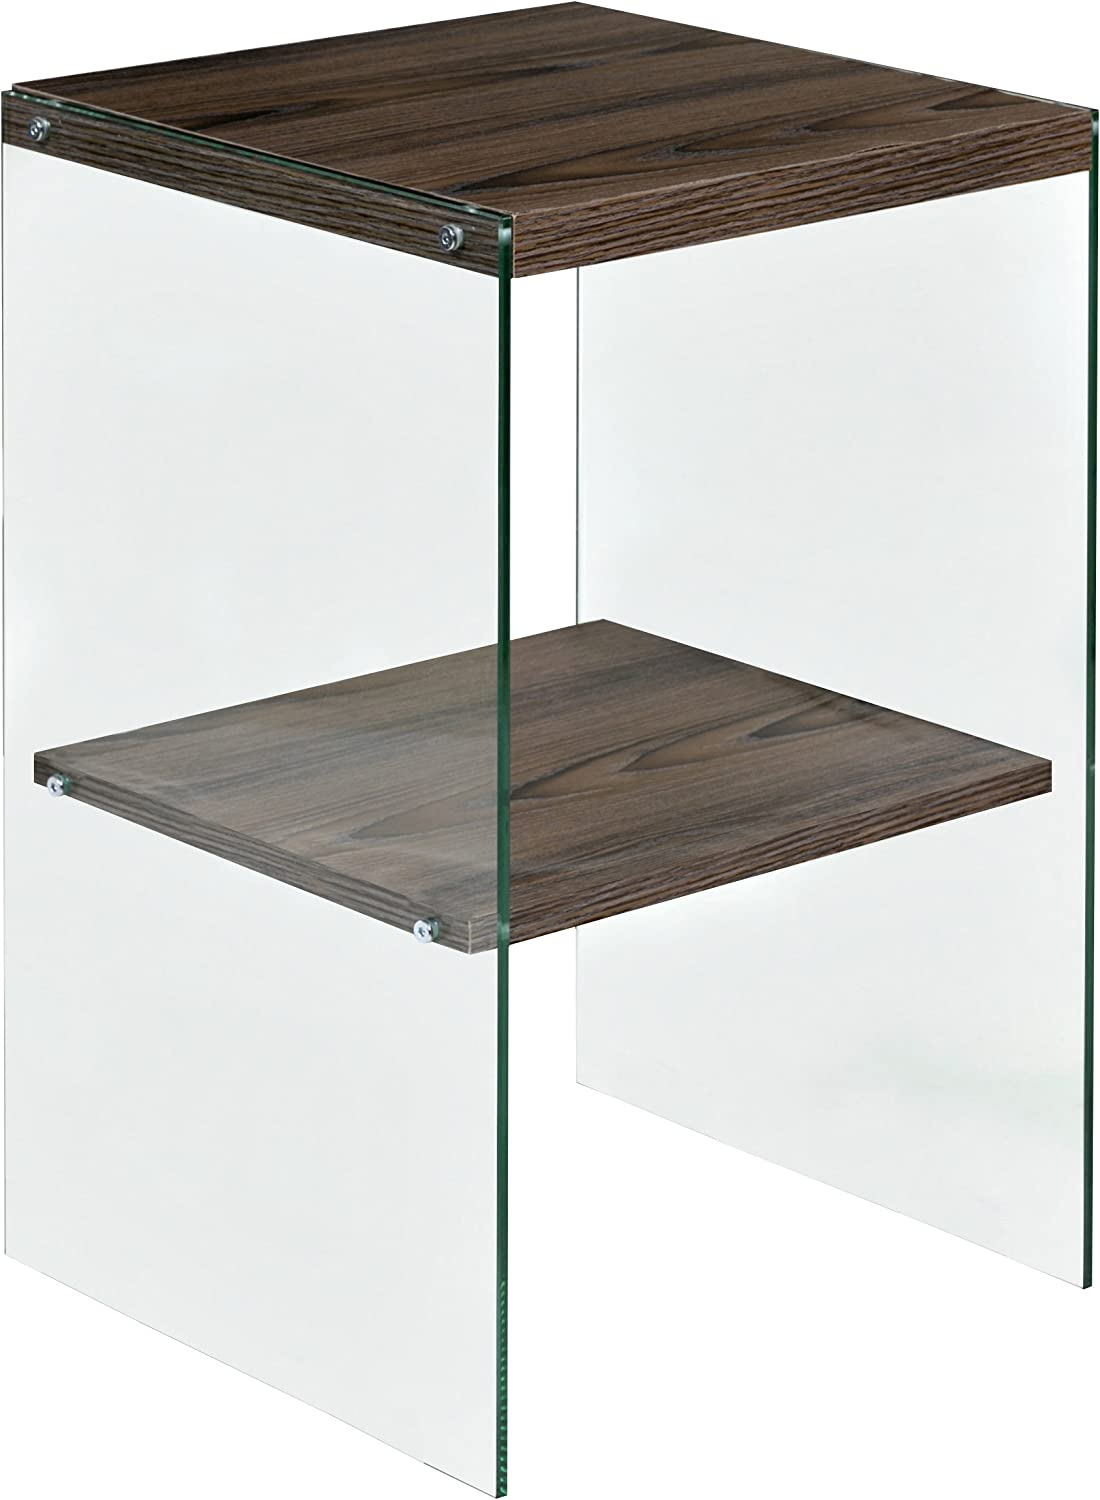 OneSpace 50-JN19ETWN Escher Skye Glass Wood Accent End Table, Walnut